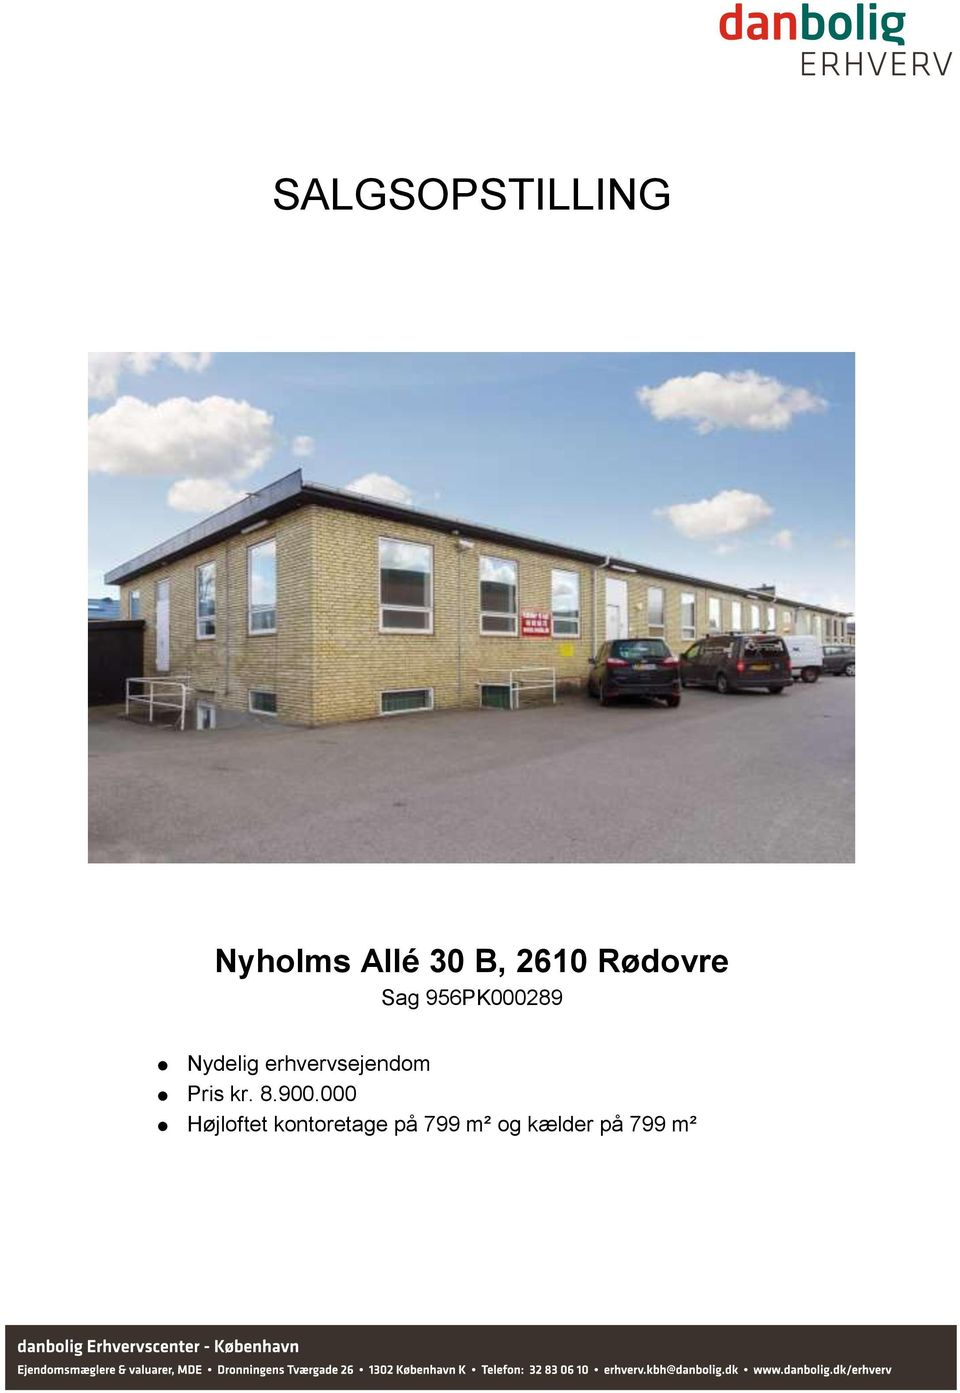 nyholms alle 28